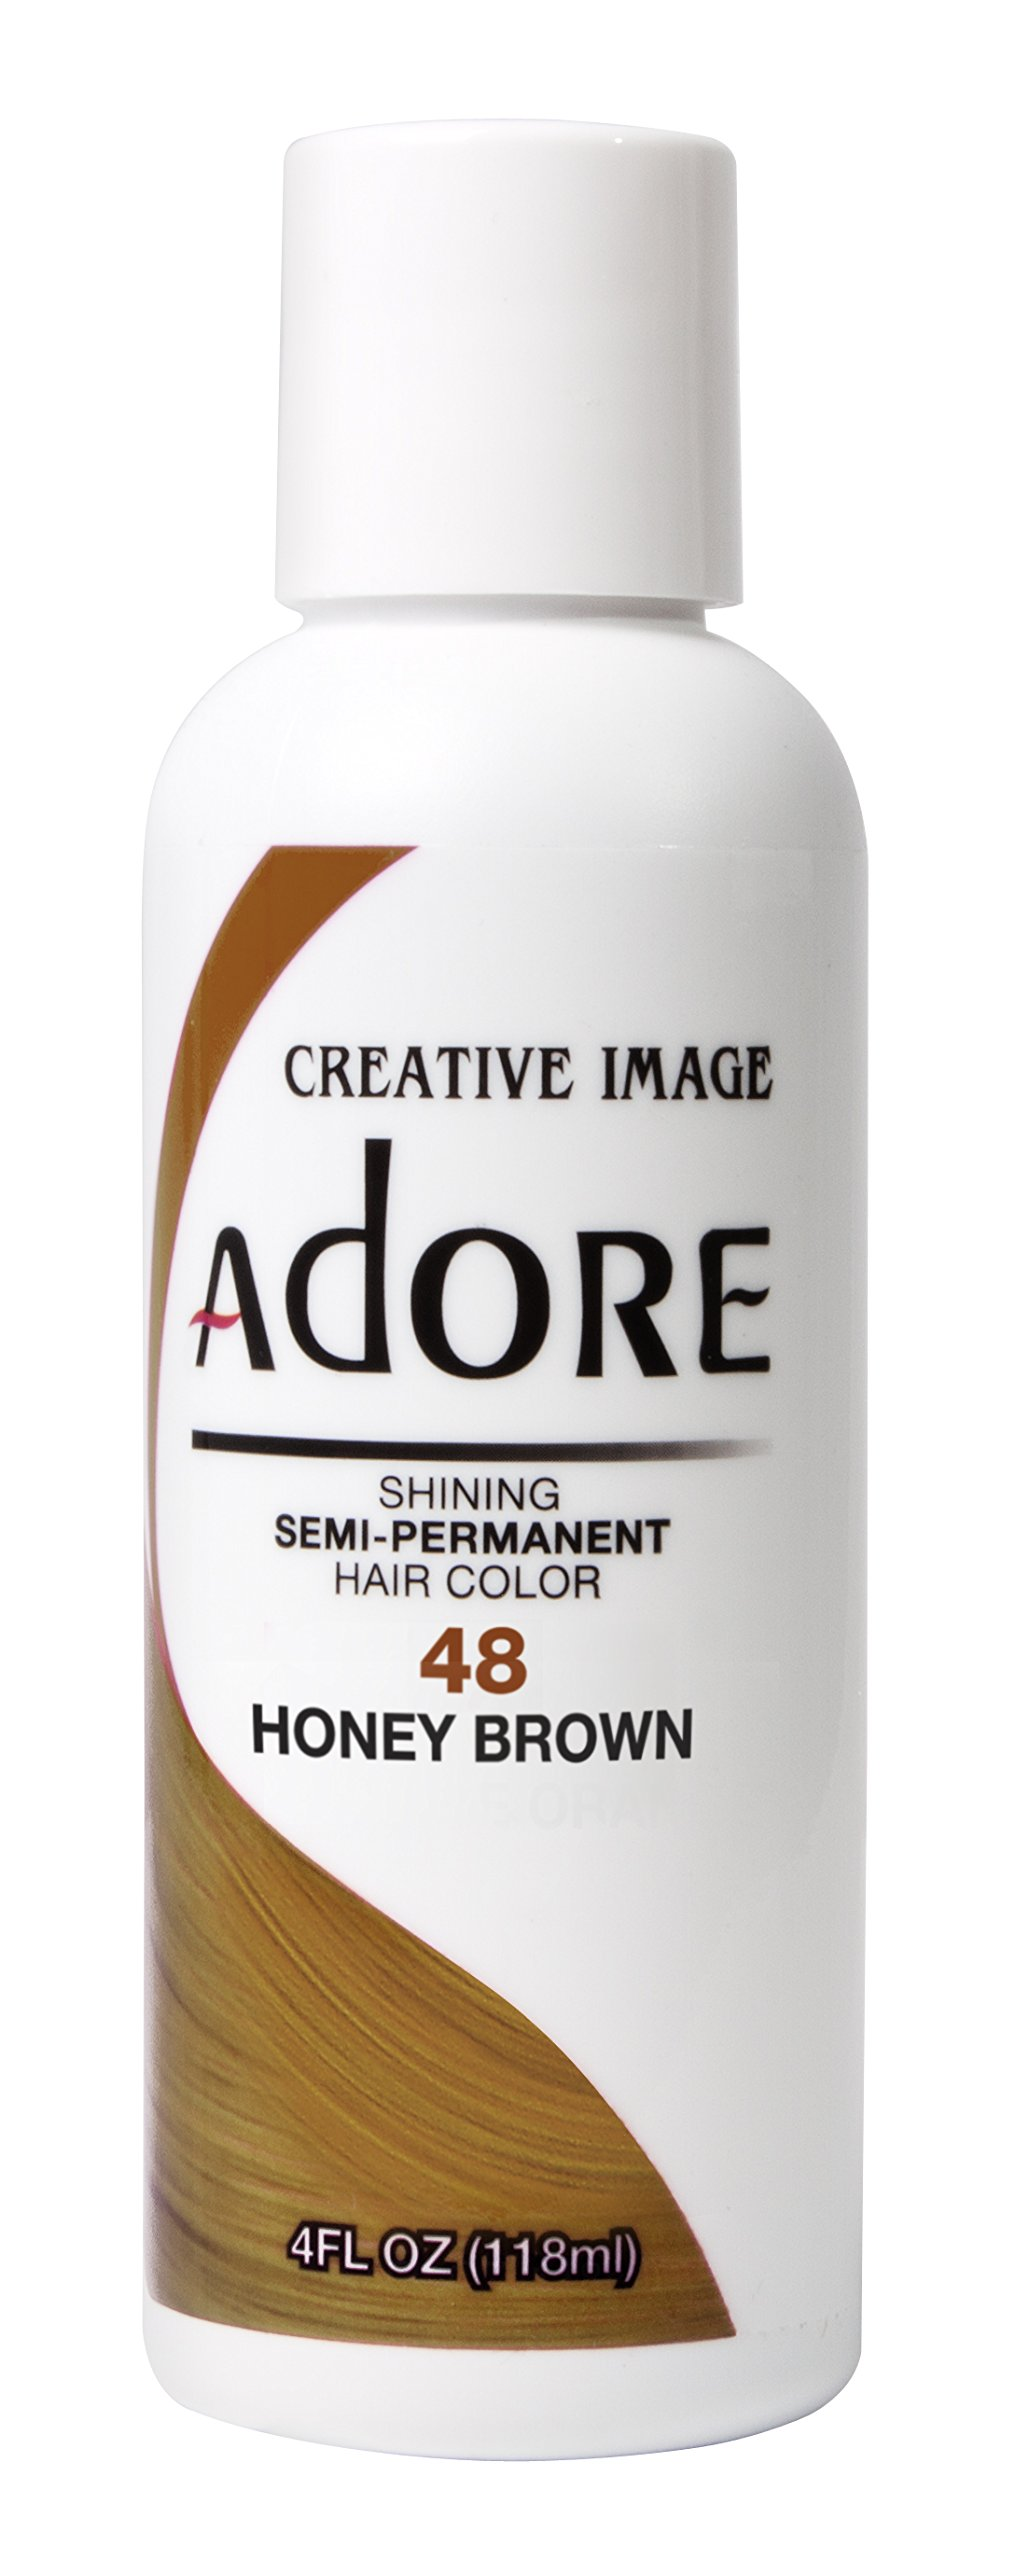 Adore Shining Semi Permanent Hair Colour, 48 Honey Brown by Adore